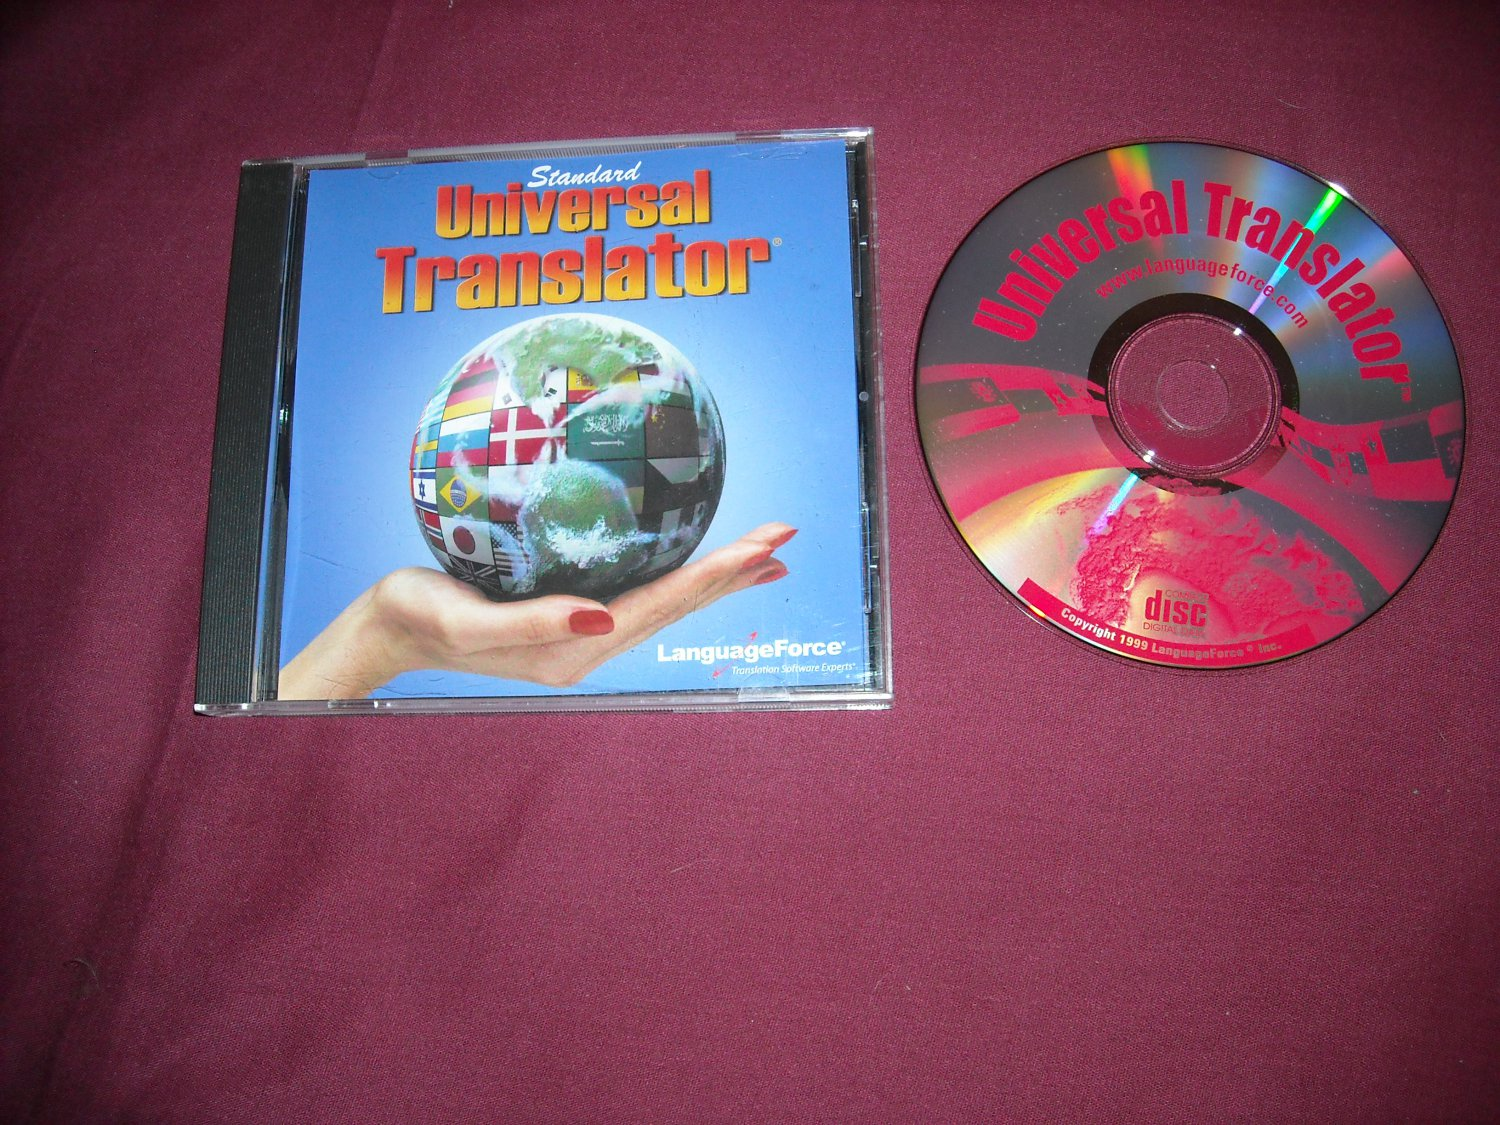 Standard Universal Translator by Language Force PC CD-Rom Software 1999